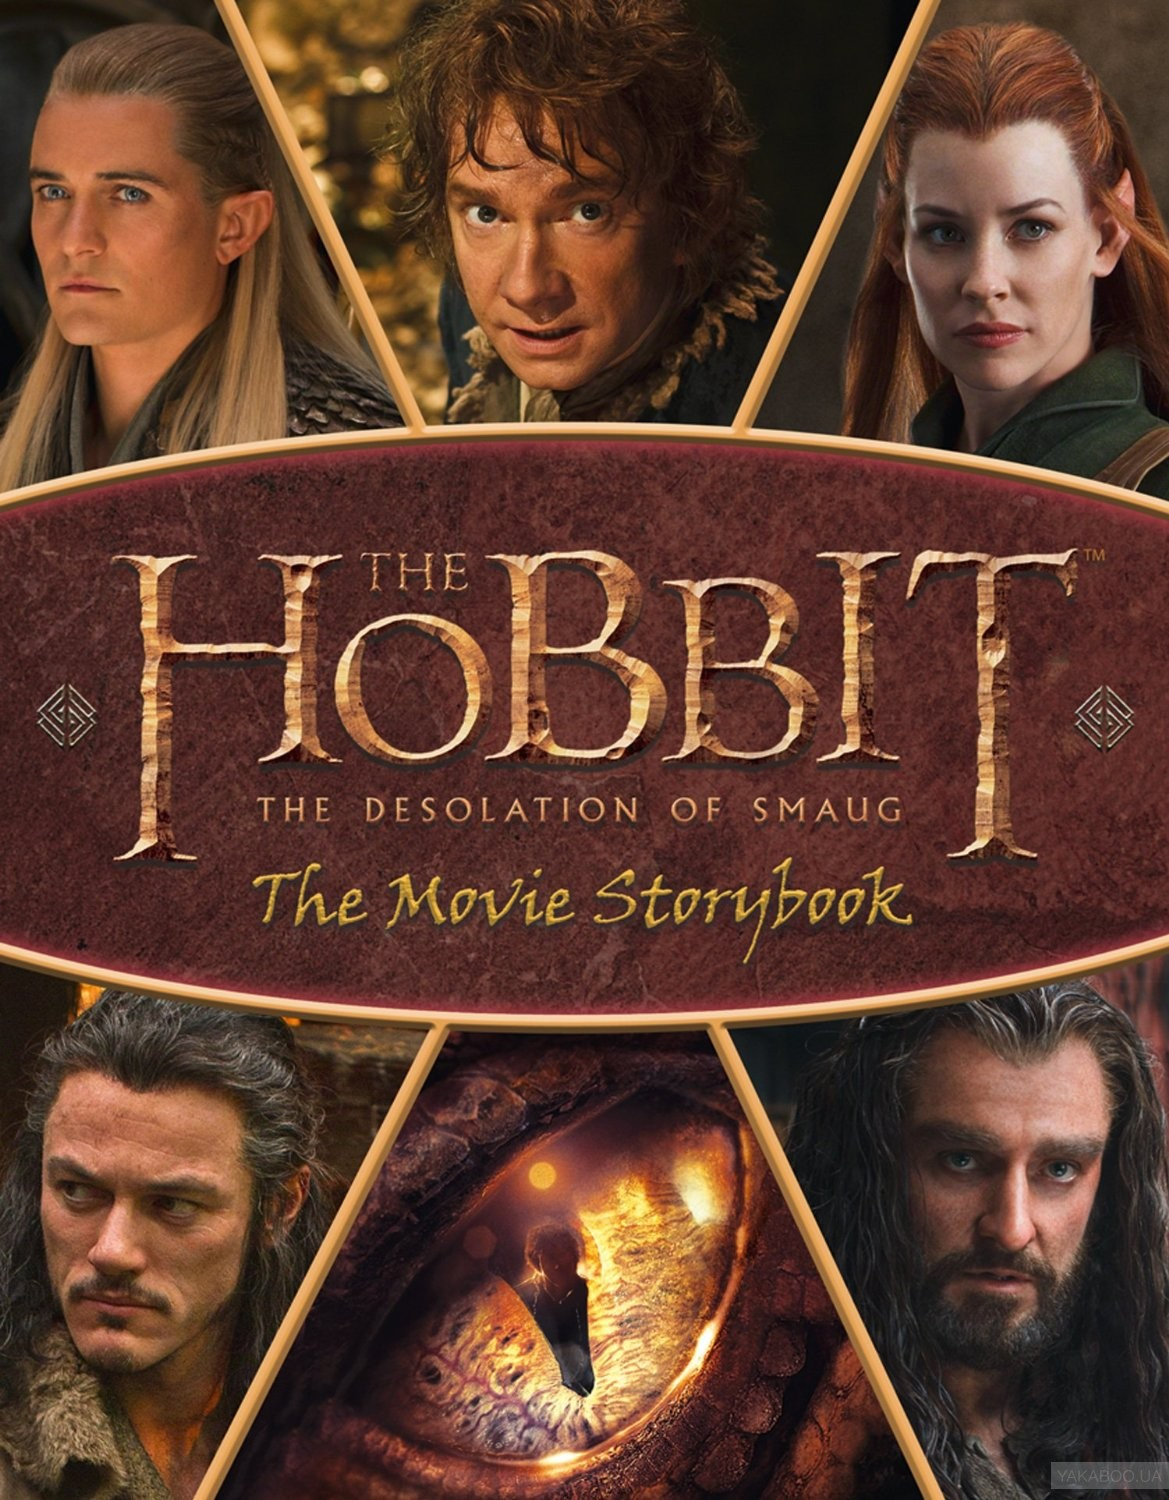 The Hobbit. The Desolation of Smaug: The Movie Storybook